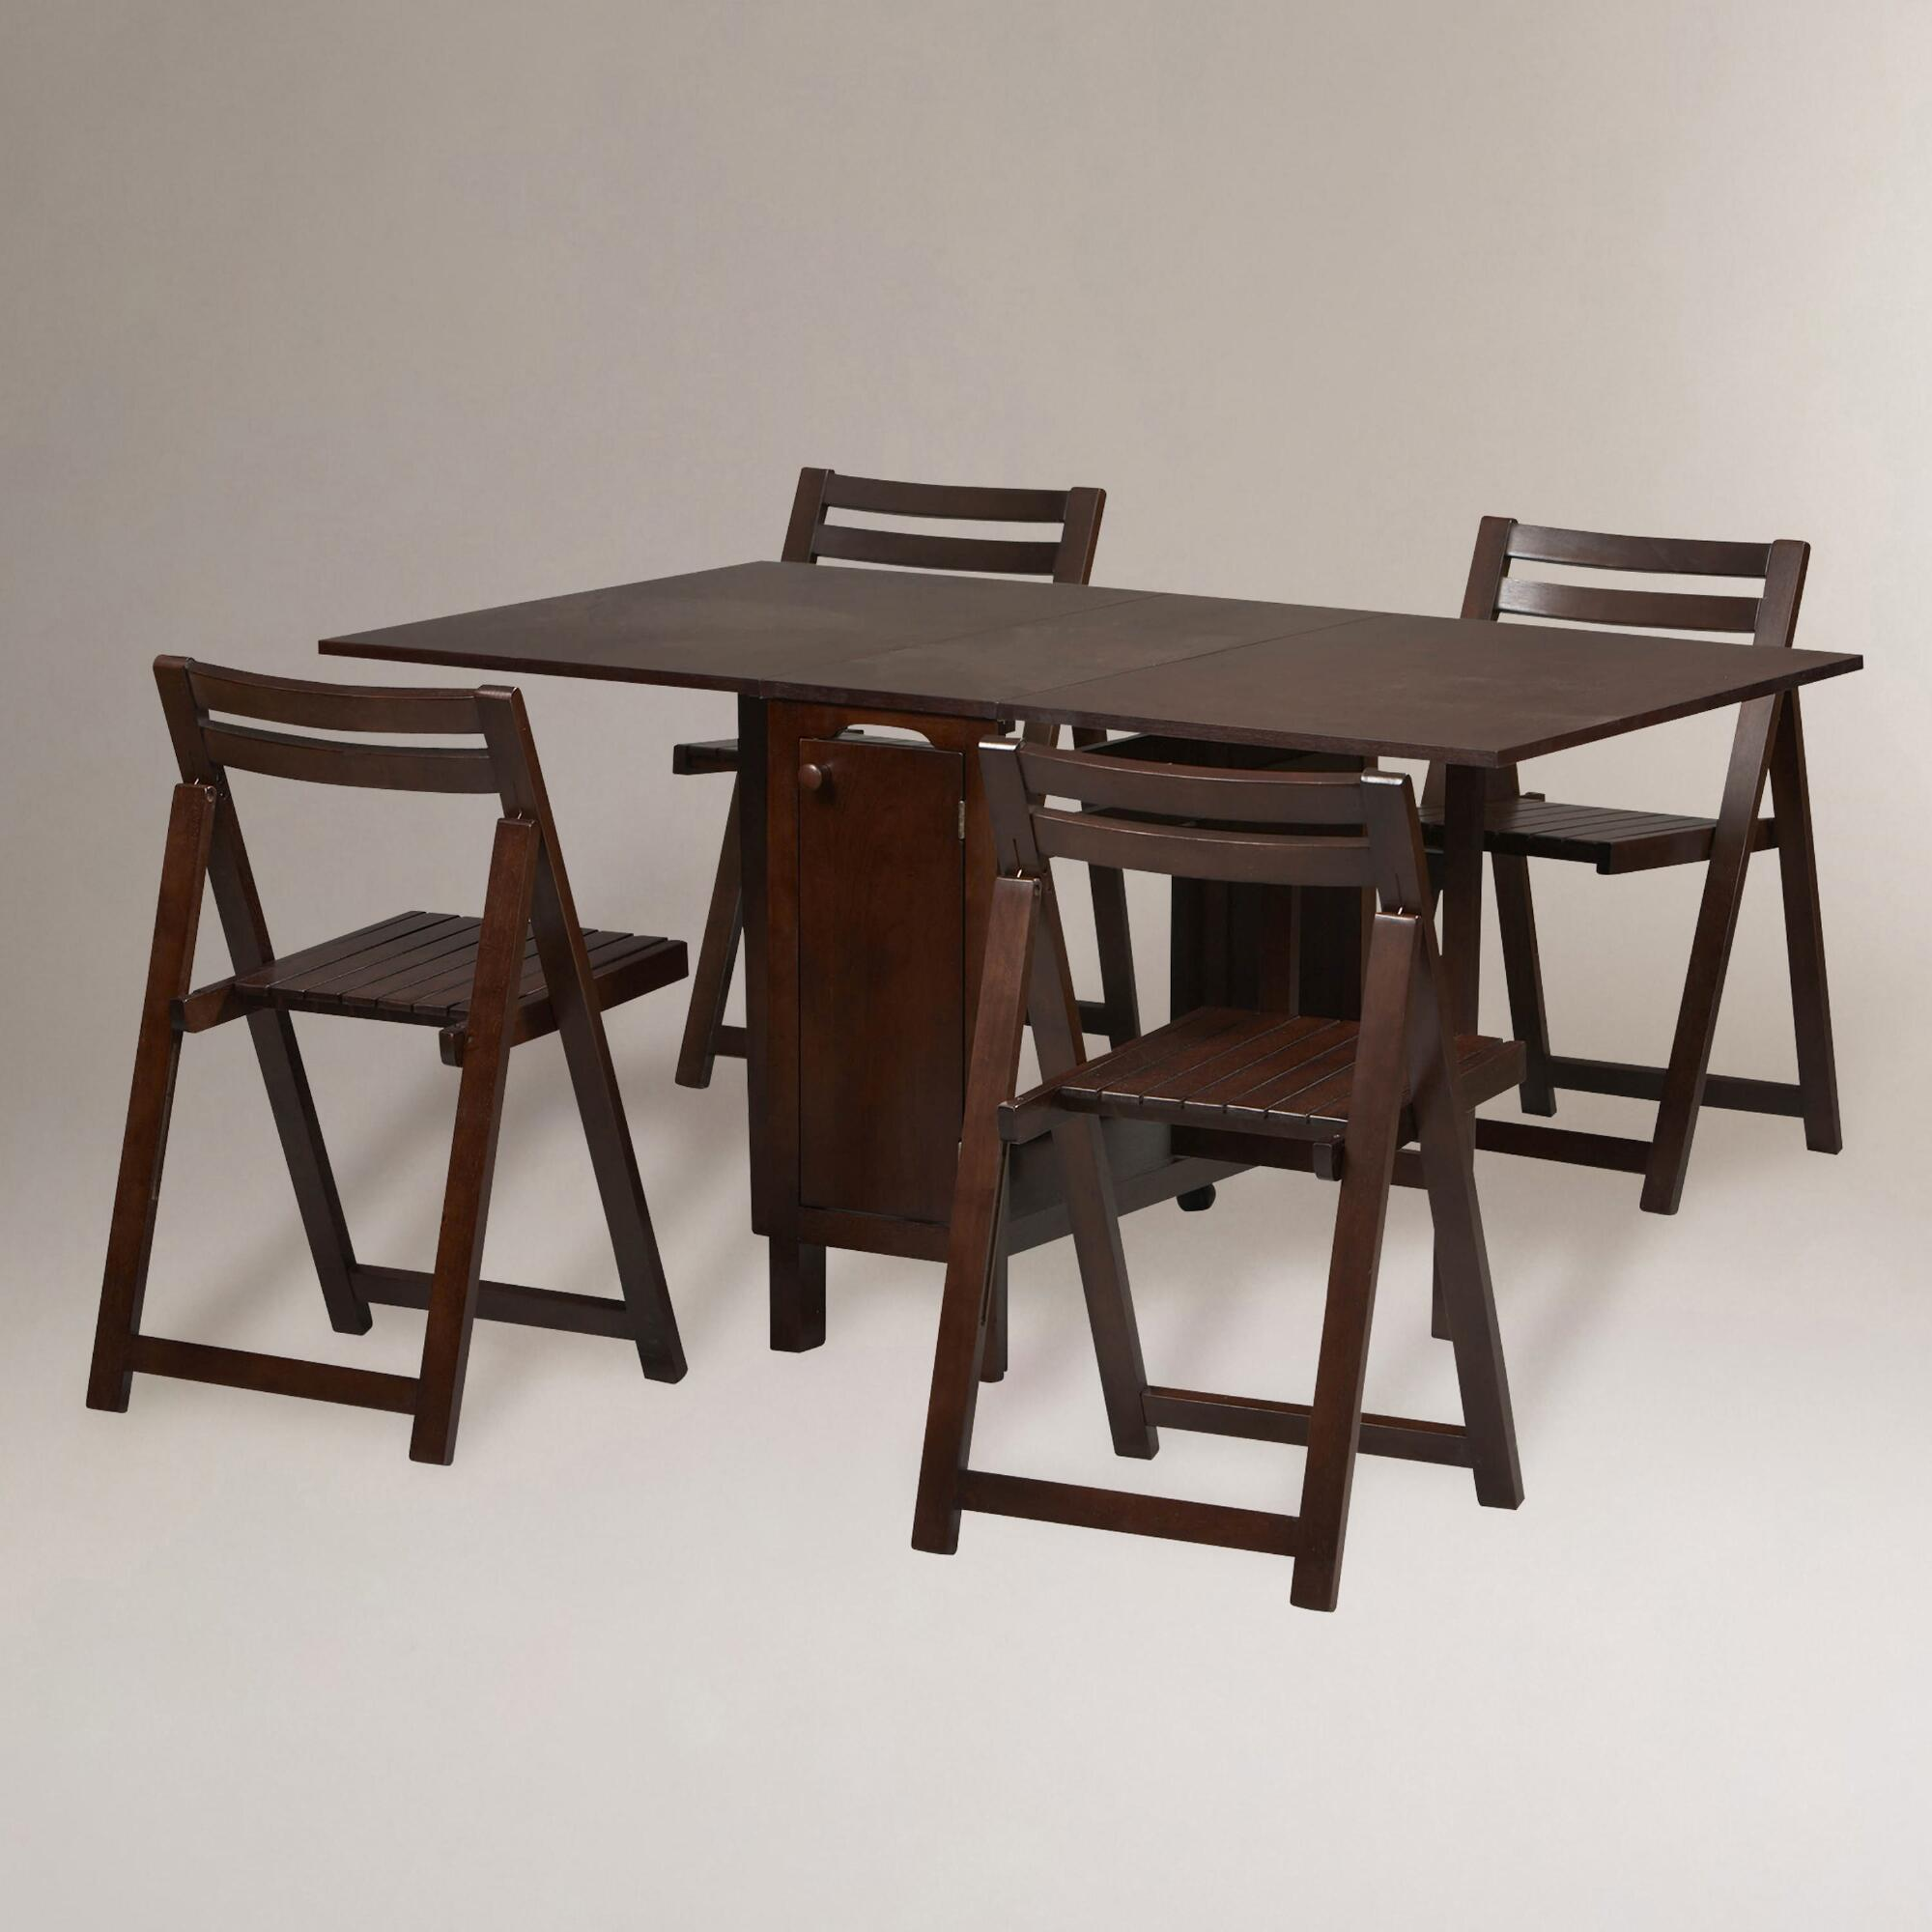 Space saving dining tables wenge minima simple aluminium dining table - Wenge Lawson Space Saver Table Amp Chair Set World Market Download